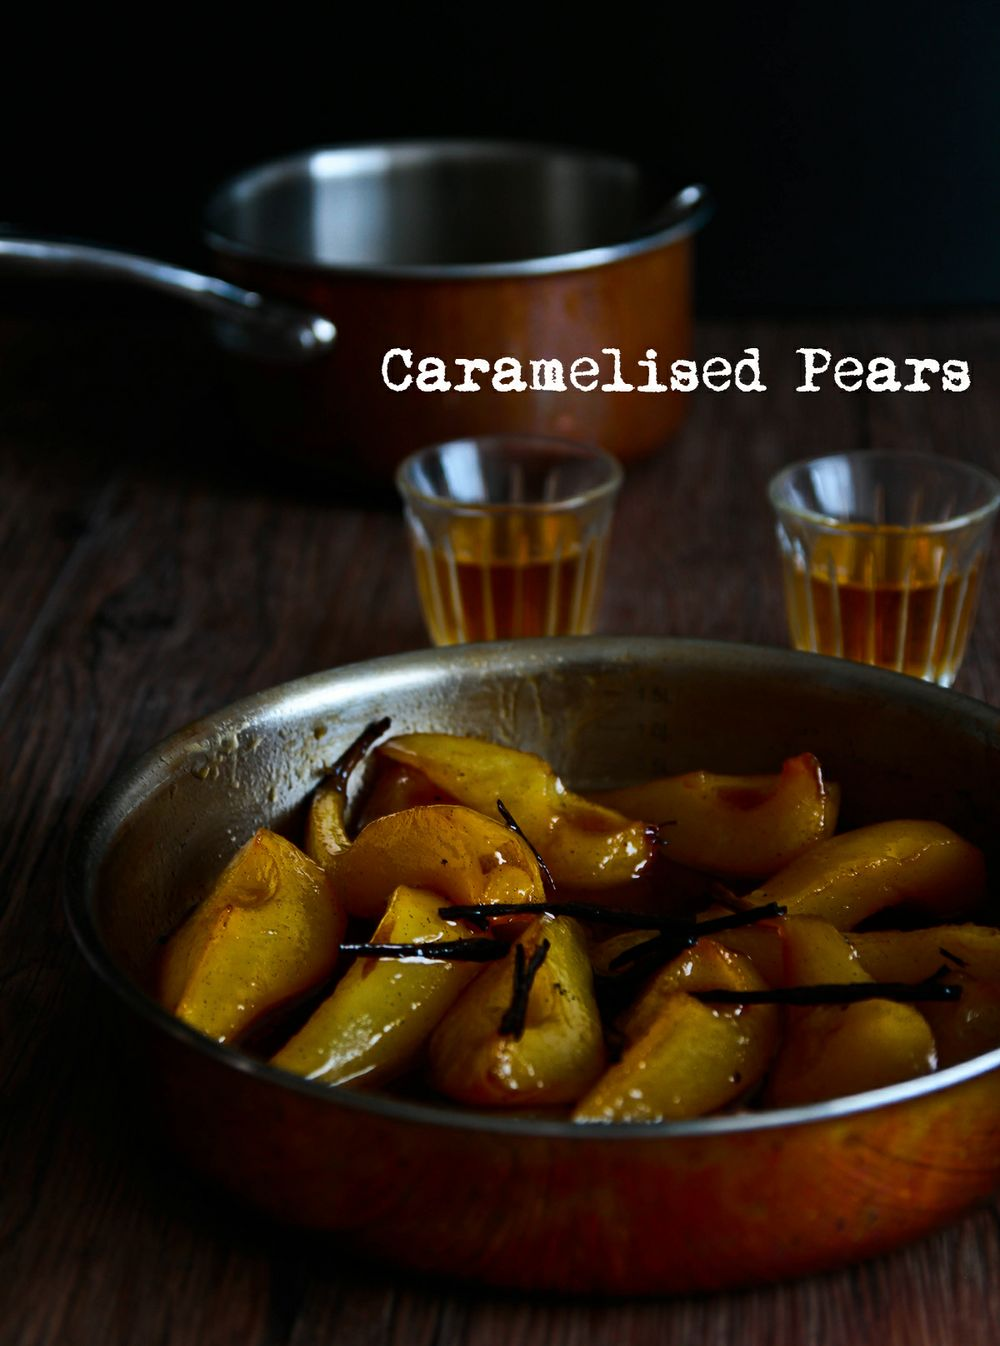 m-caramelised-pears-1-3